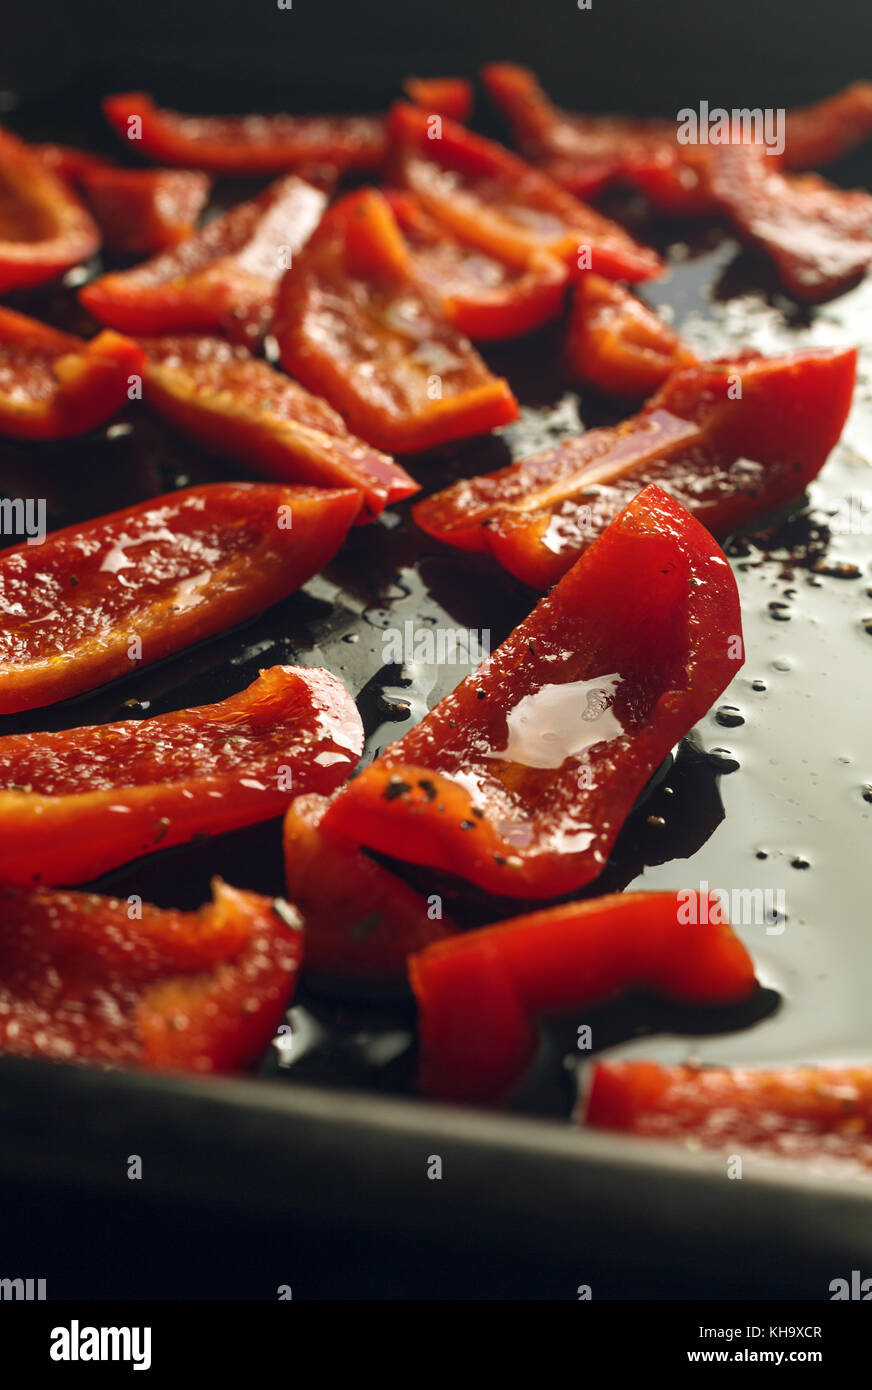 Red Bell Pepper slices - Stock Image